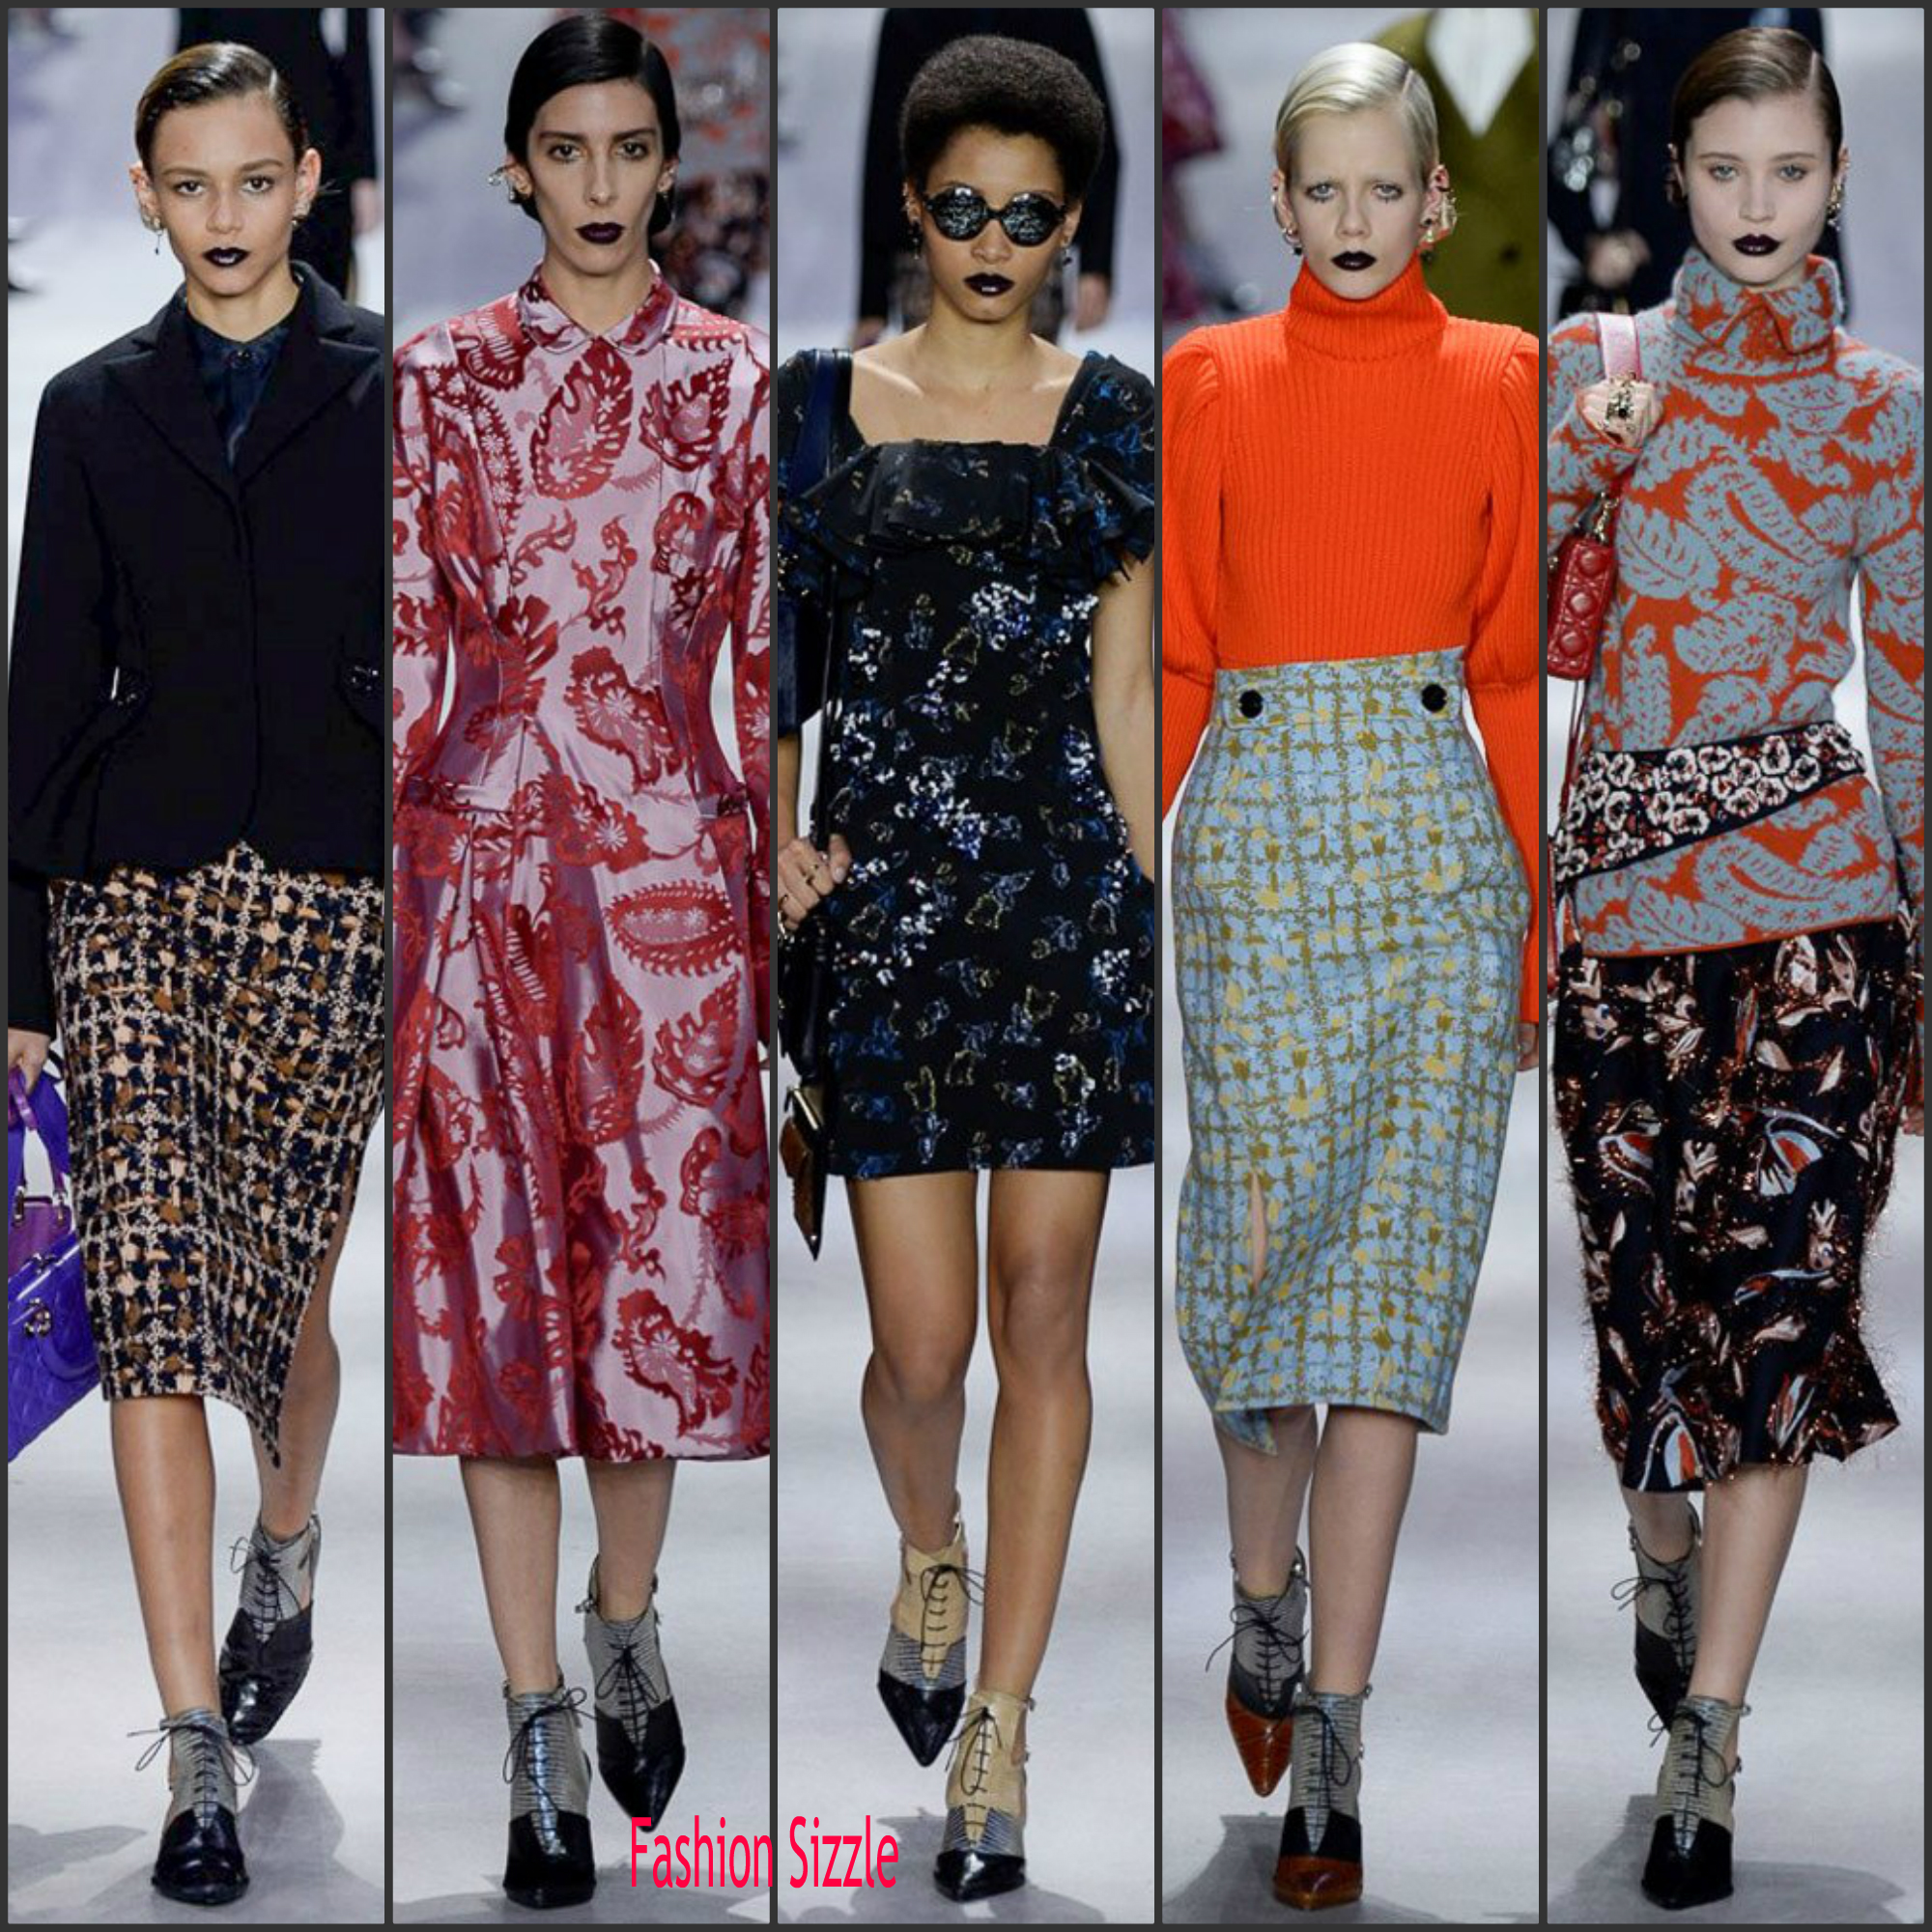 christian-dior-fall-2016-ready-to-wear